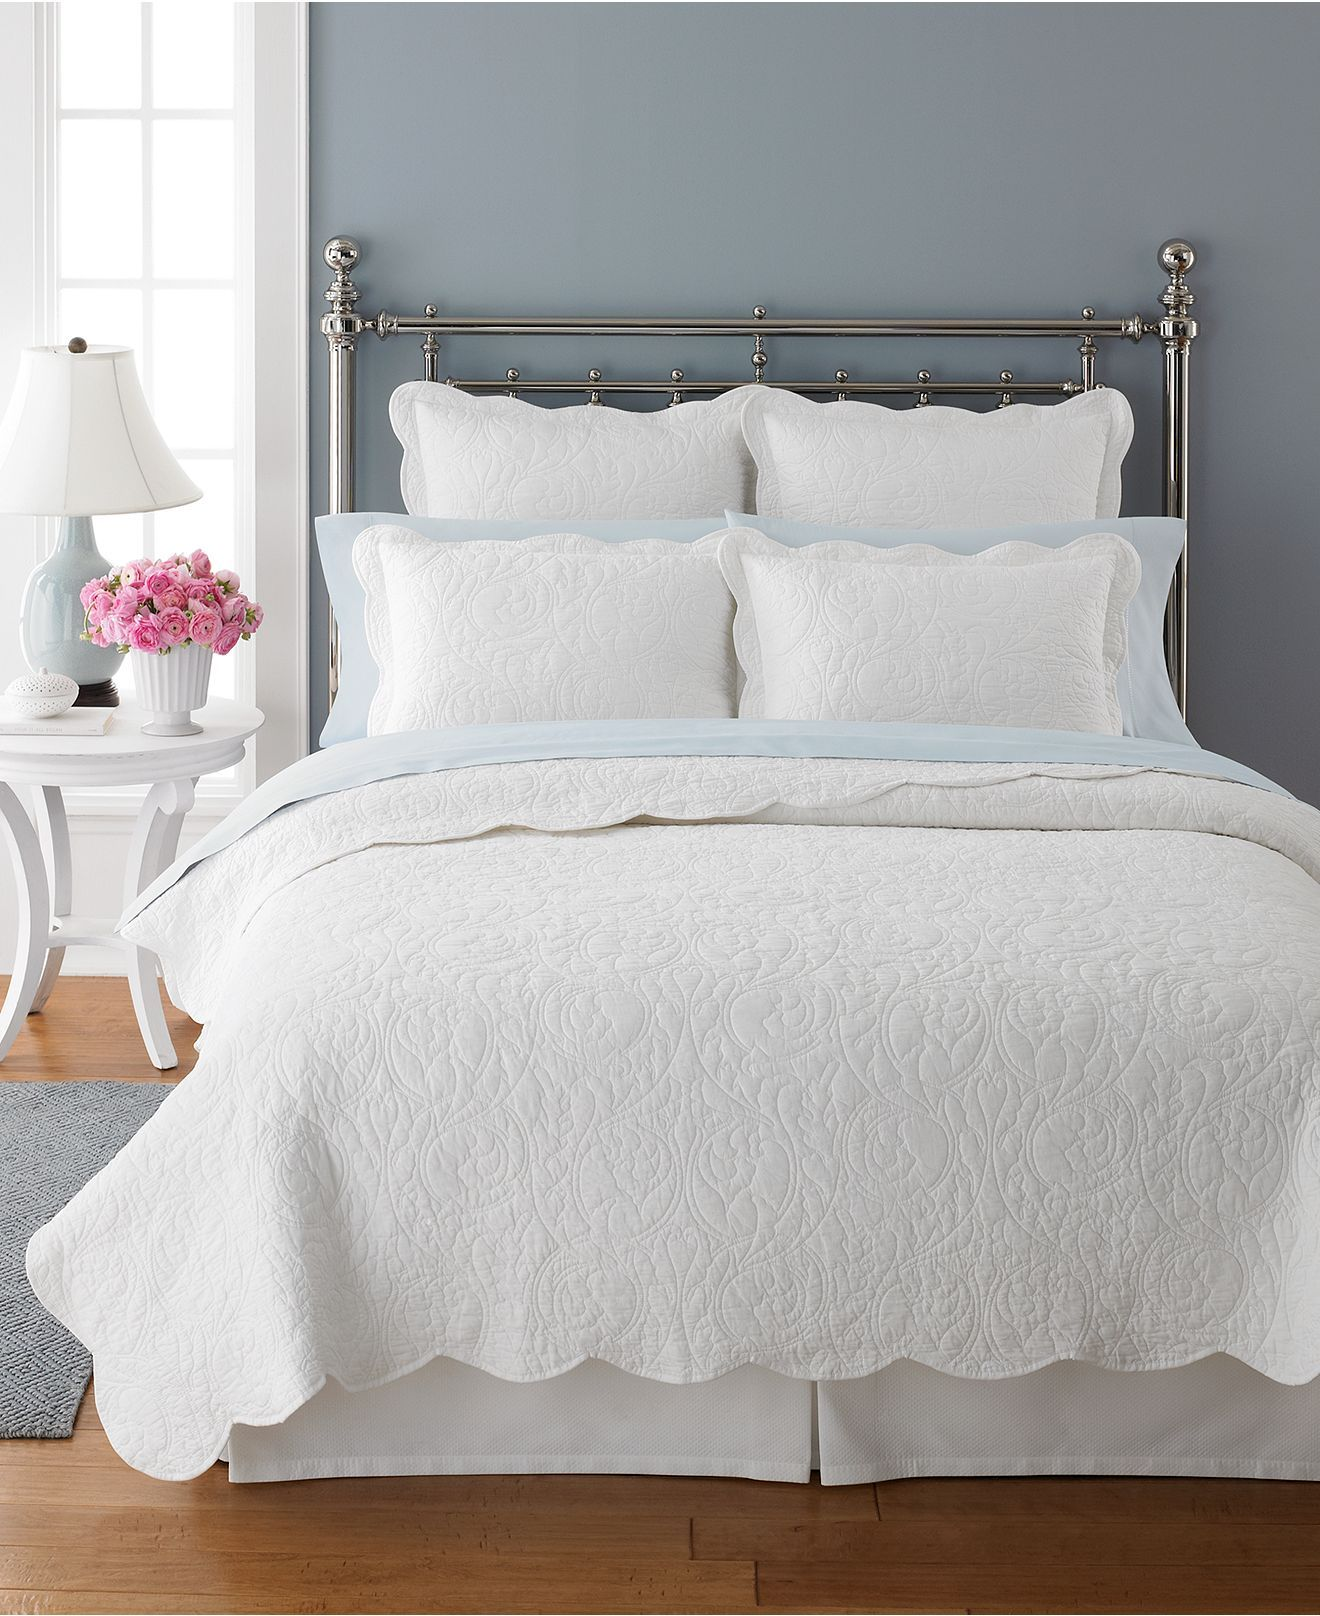 Martha Stewart Collection Bedding Damask Scroll Quilts Quilts Bedspreads Bed Bath Macy S White Quilt Bedding Bed Spreads Damask Bedding